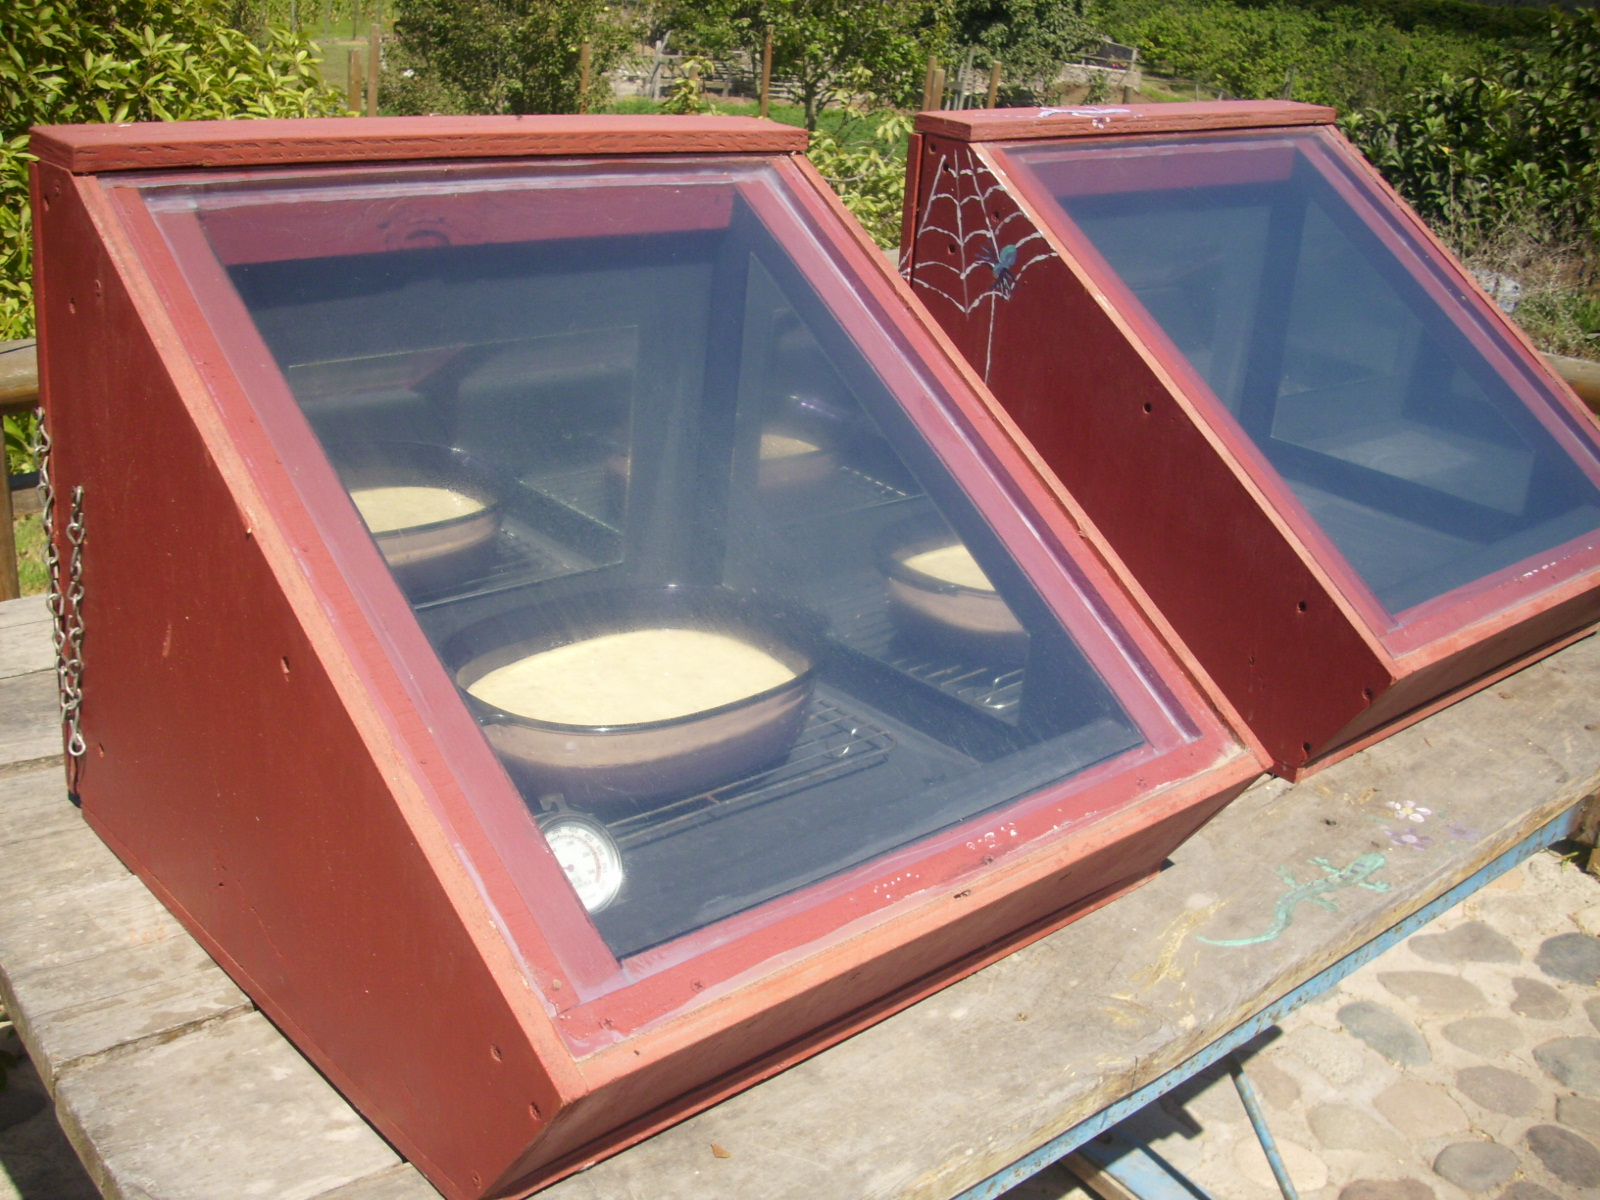 4 ways to use solar power around your home money sense for How to build a solar oven for kids